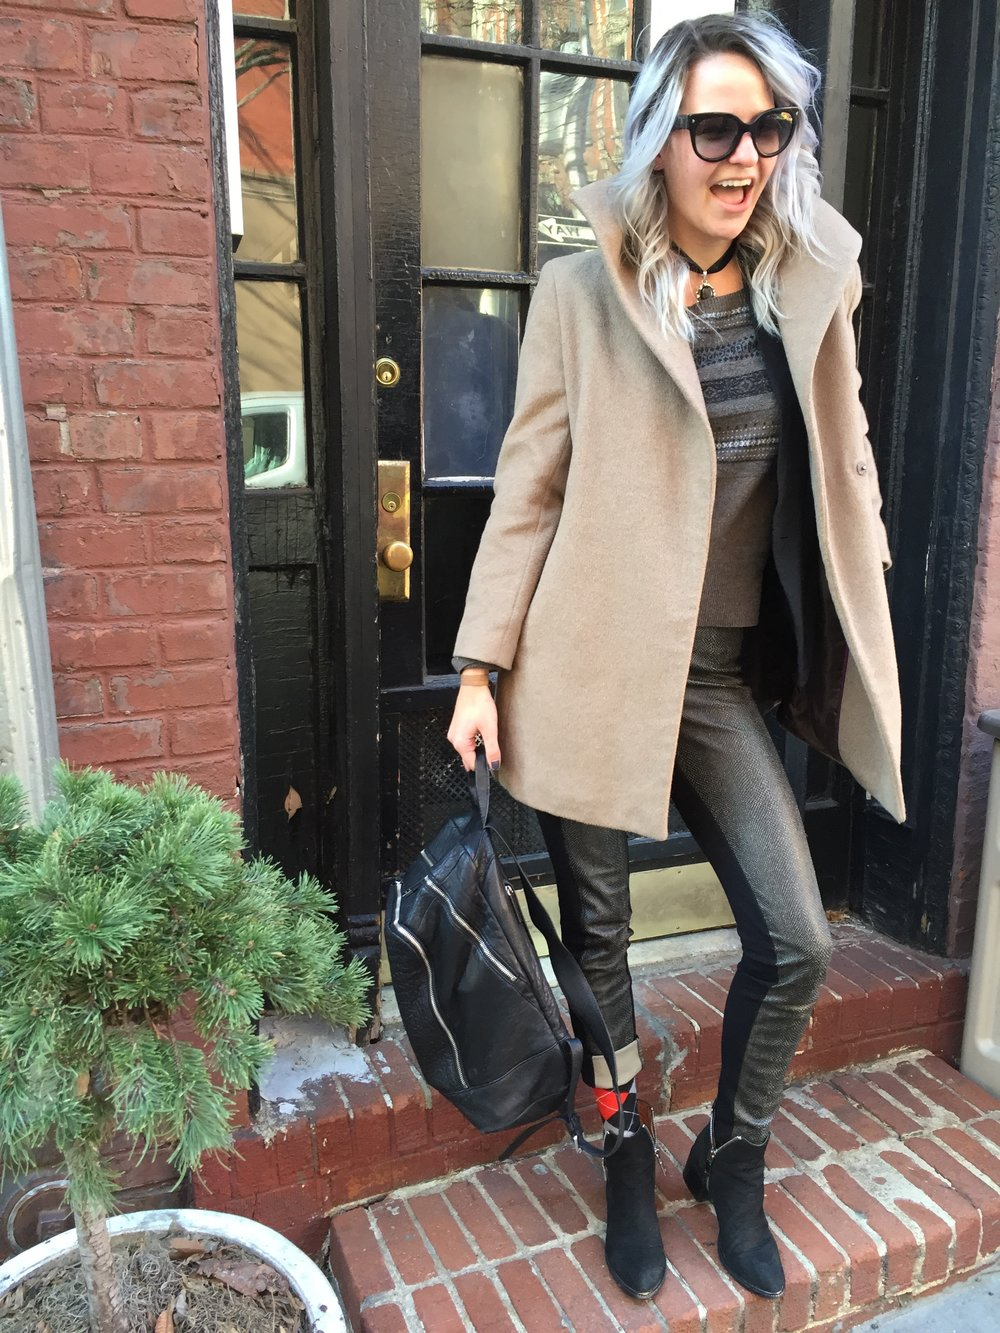 Sunglasses: Prada; Necklace: Stone (Mexico), Coat: Calvin Klein via Goodwill, Legging Pants: BCBG, Sweater: All Saints, Backpack: Vince Camuto, Socks: The Spare Room, Los Angeles, Booties: Jeffrey Campbell Photo Cred: Becca Aguilera, Location: West Village, New York